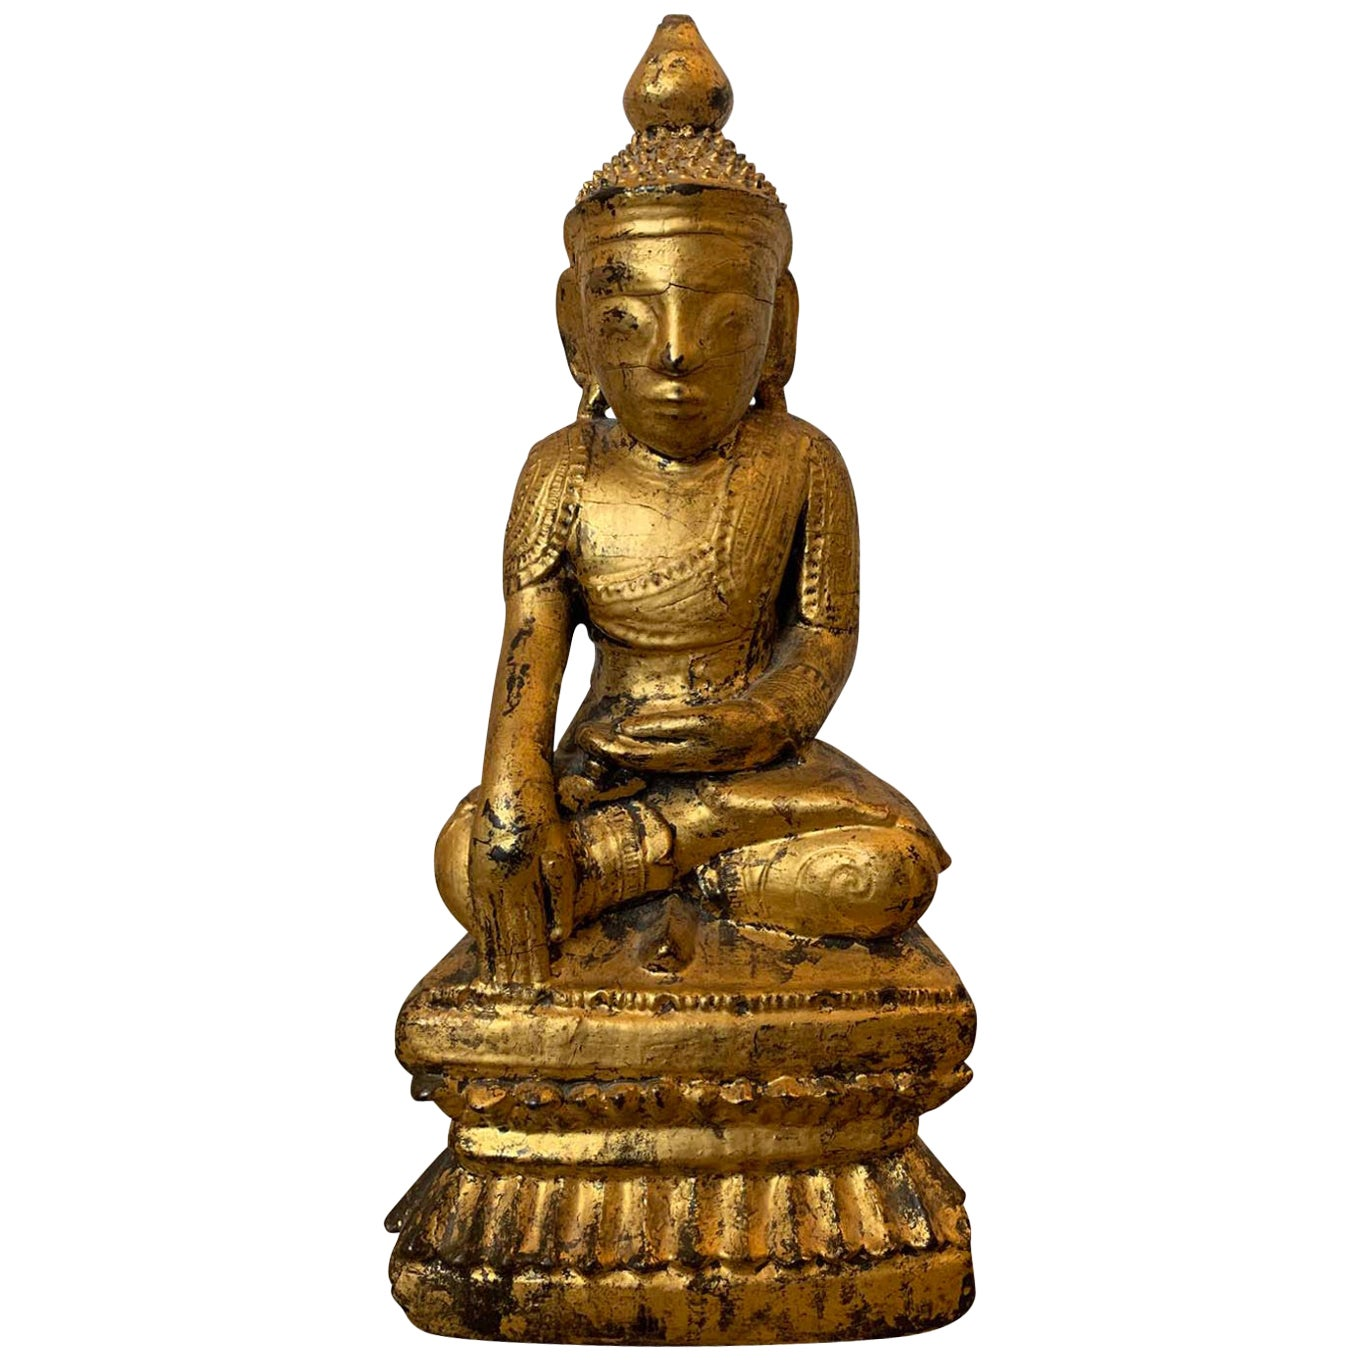 18th-19th Century Giltwood Buddha in Lotus Position